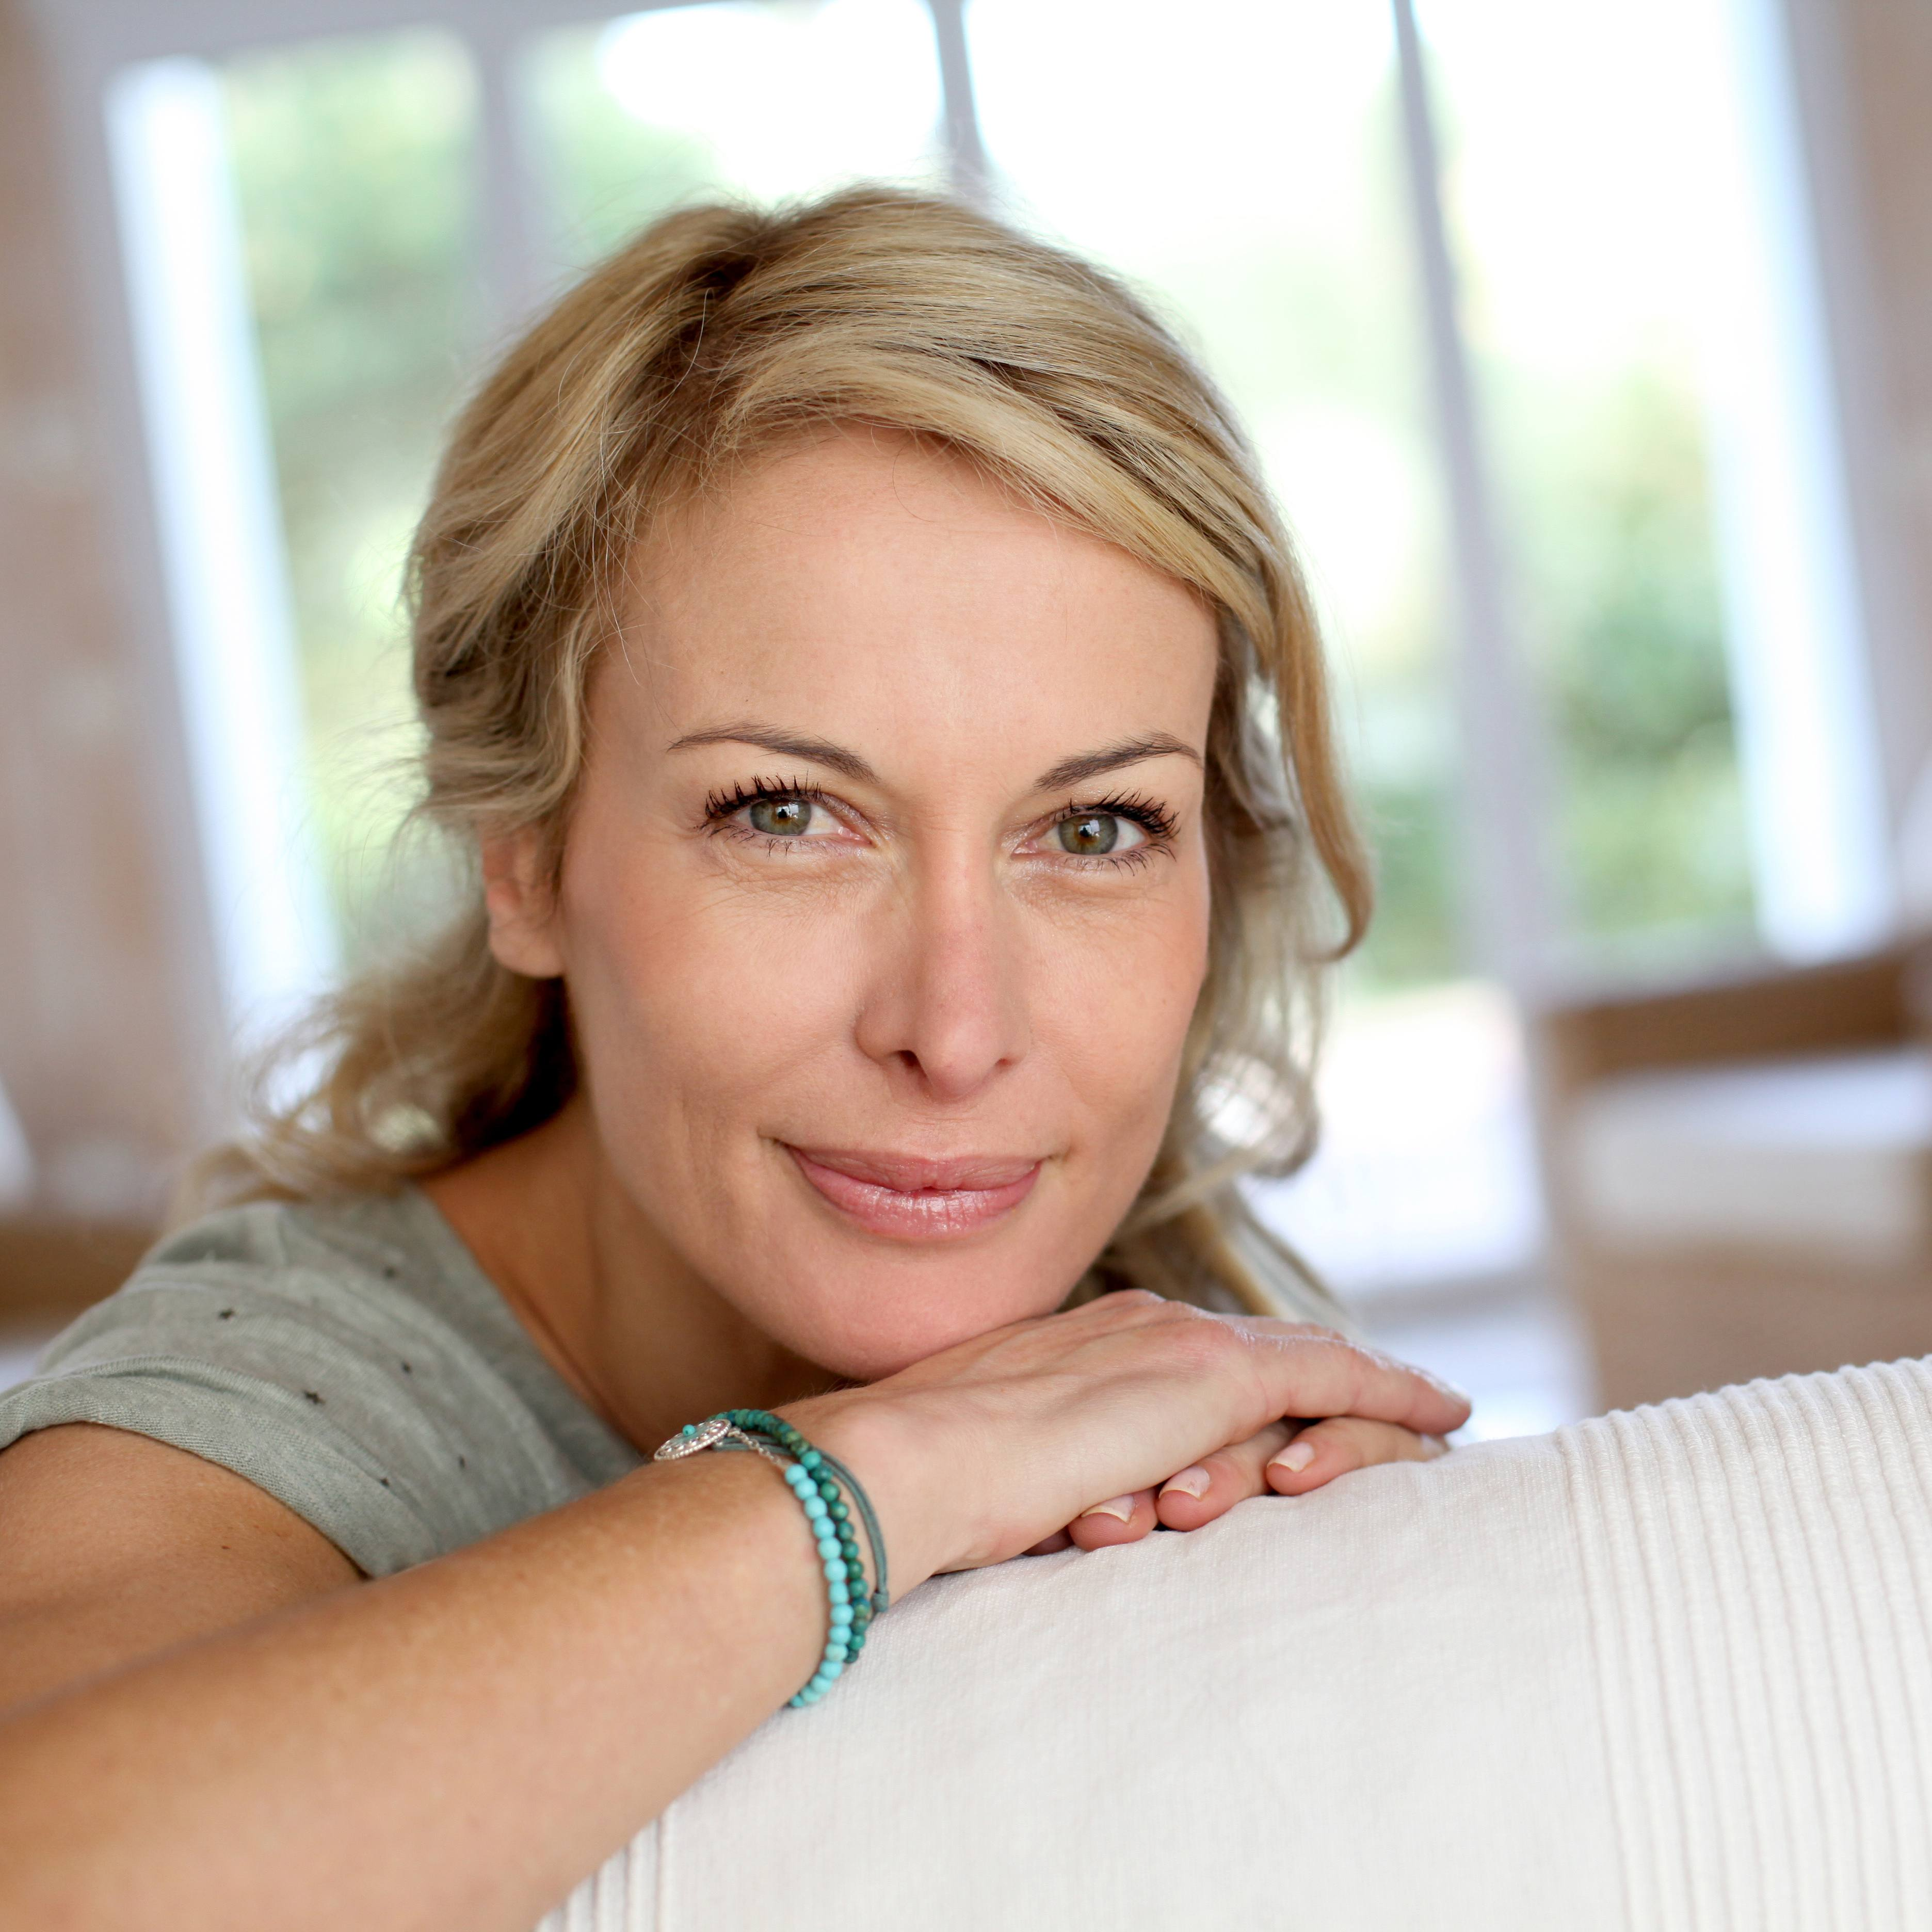 a close-up of a smiling middle-aged woman looking over the back of a couch